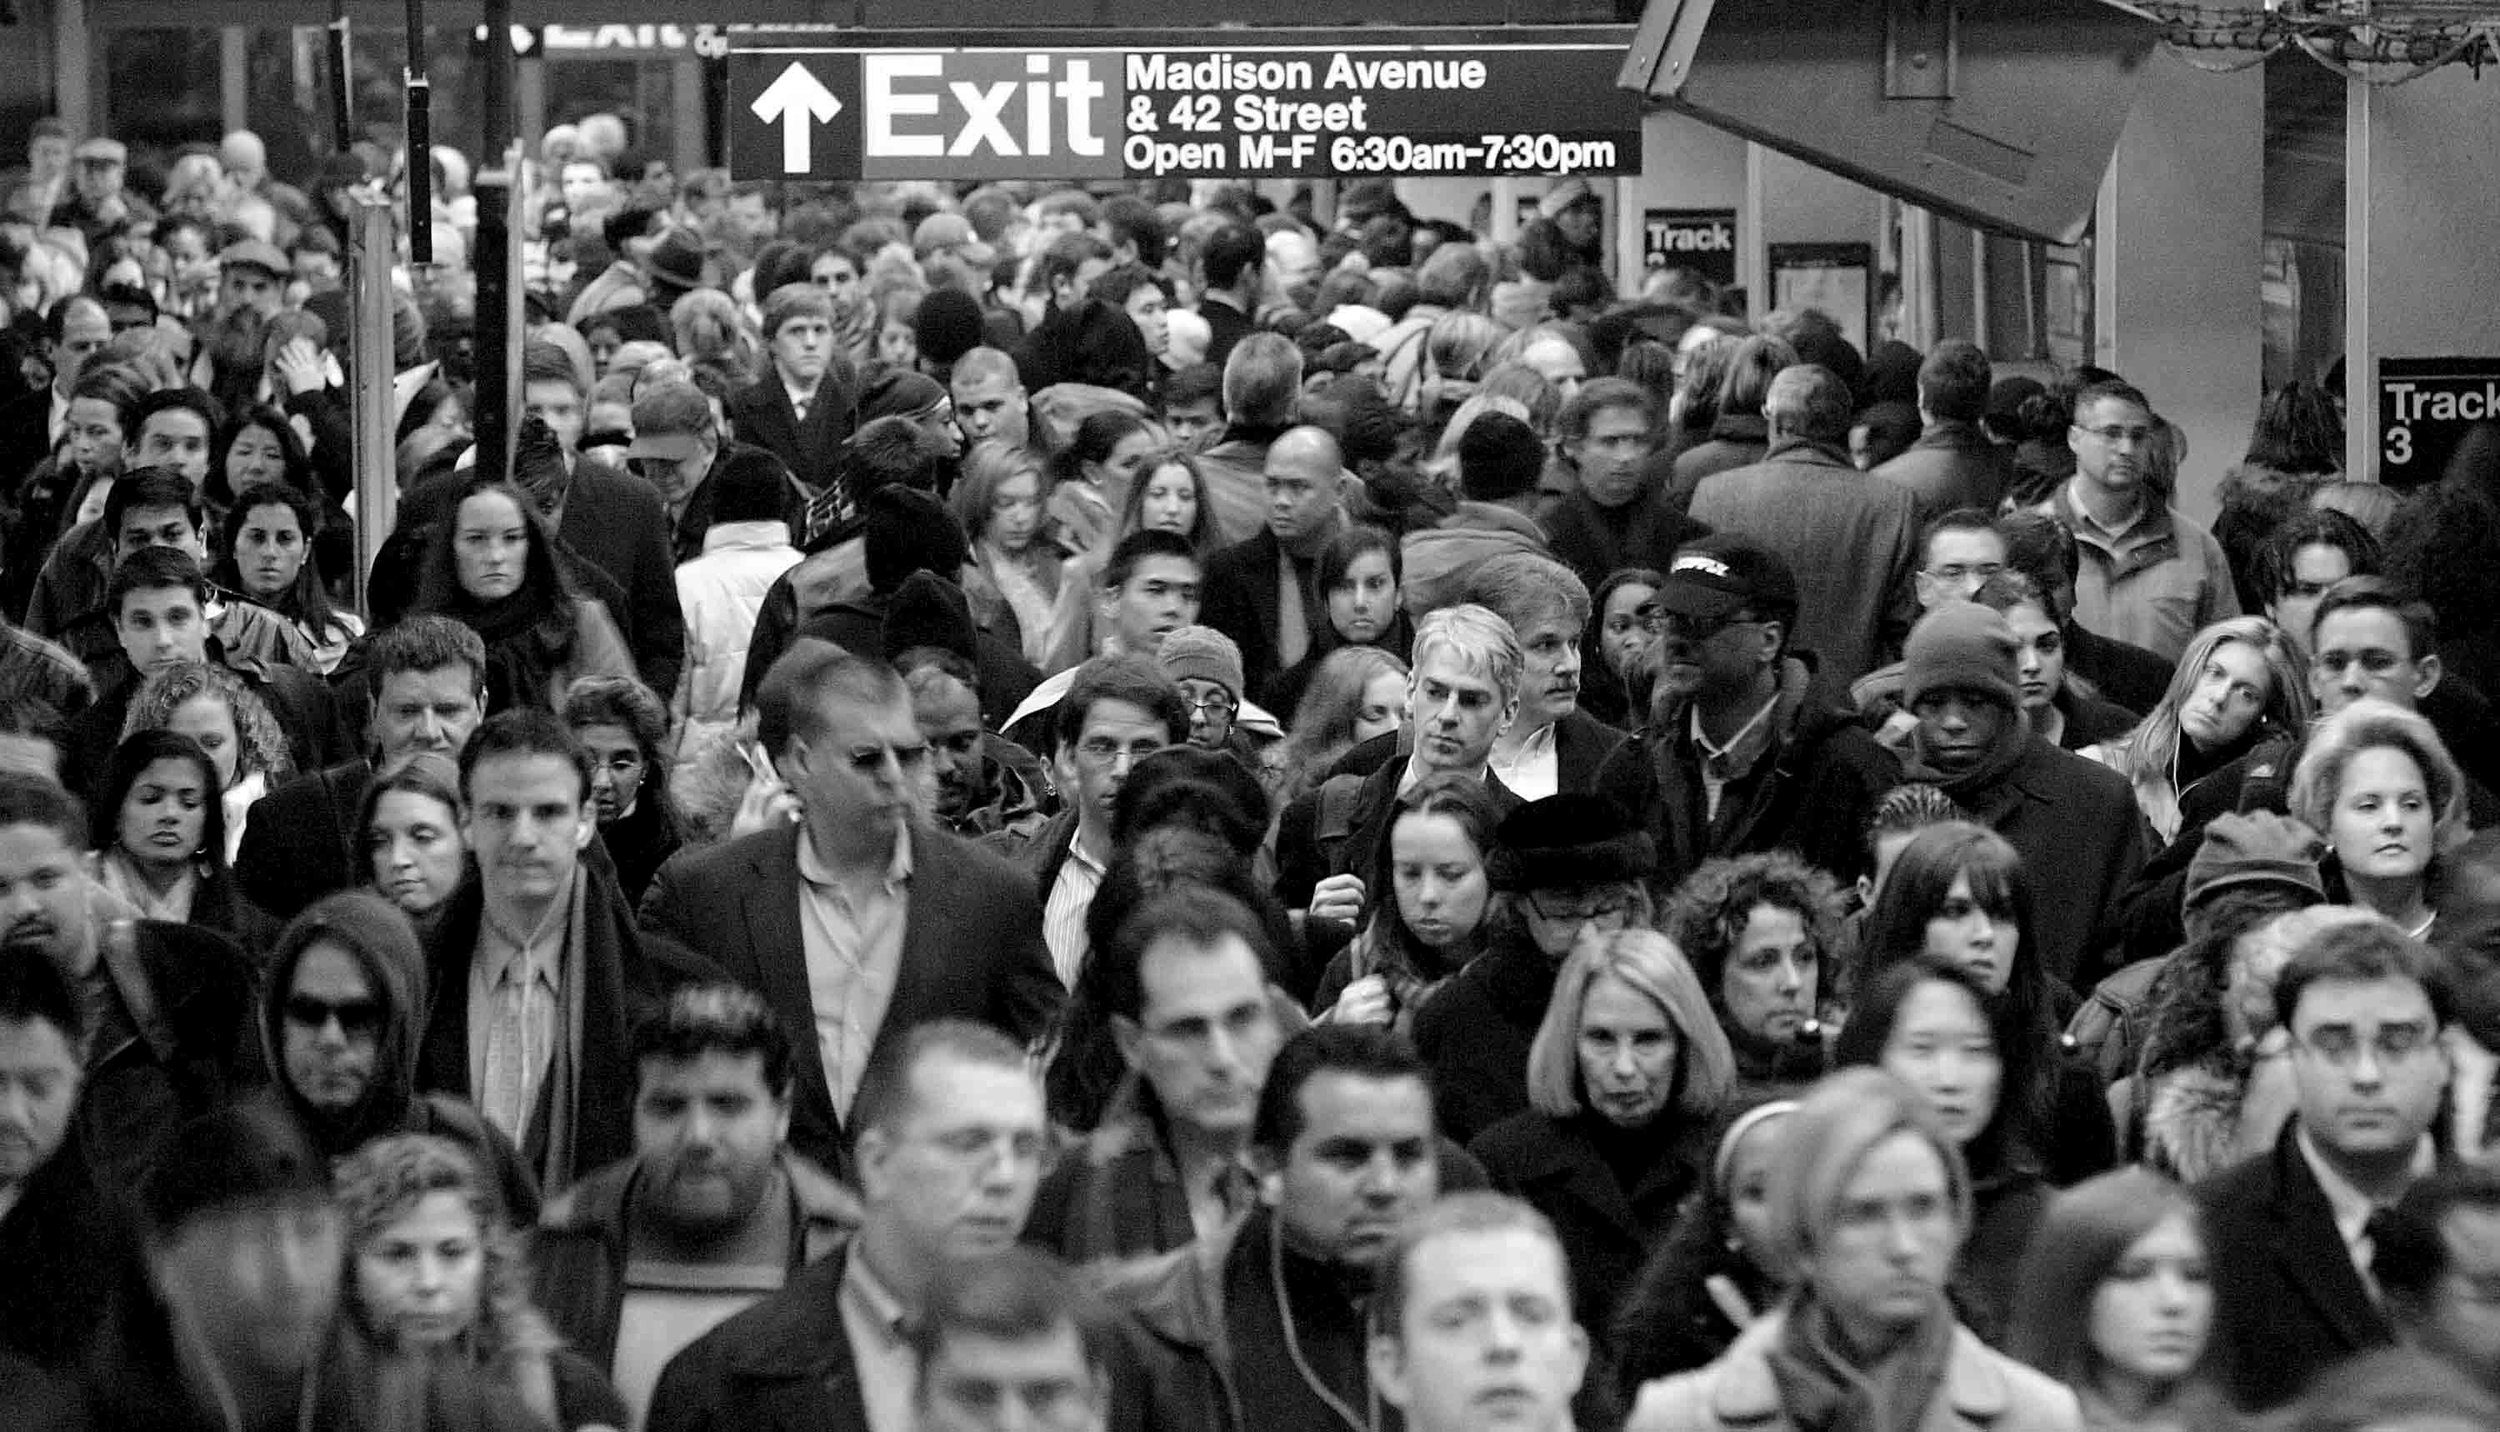 subway crowd_01.jpg